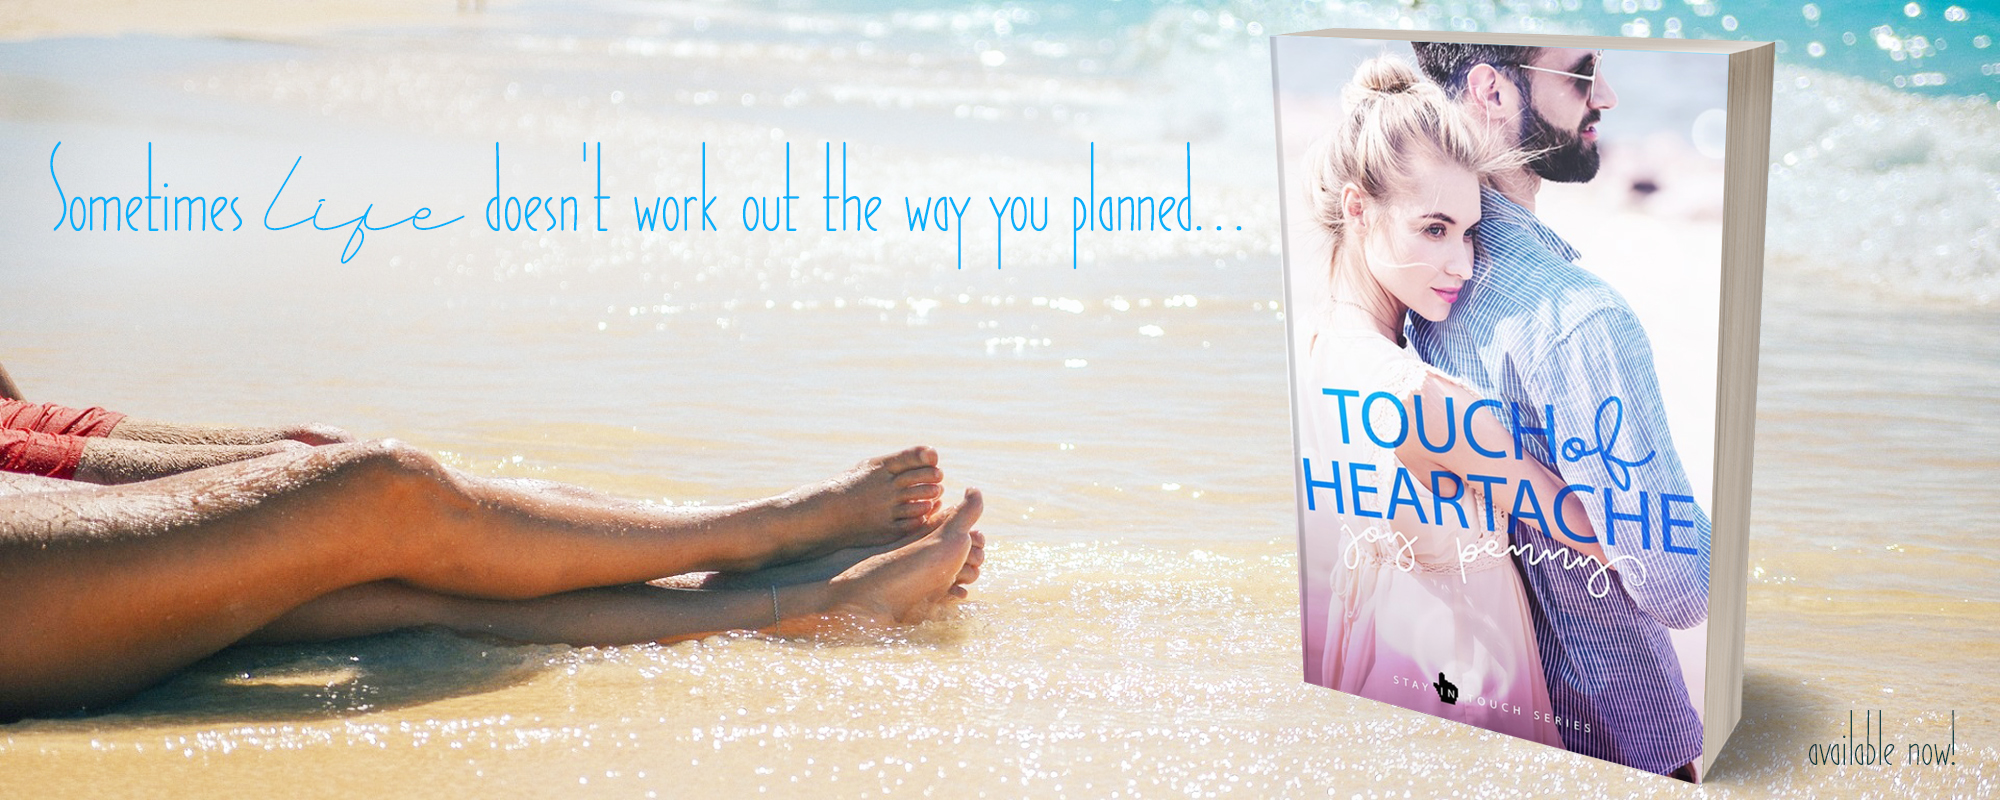 Touch of Heartache by Joy Penny, available now